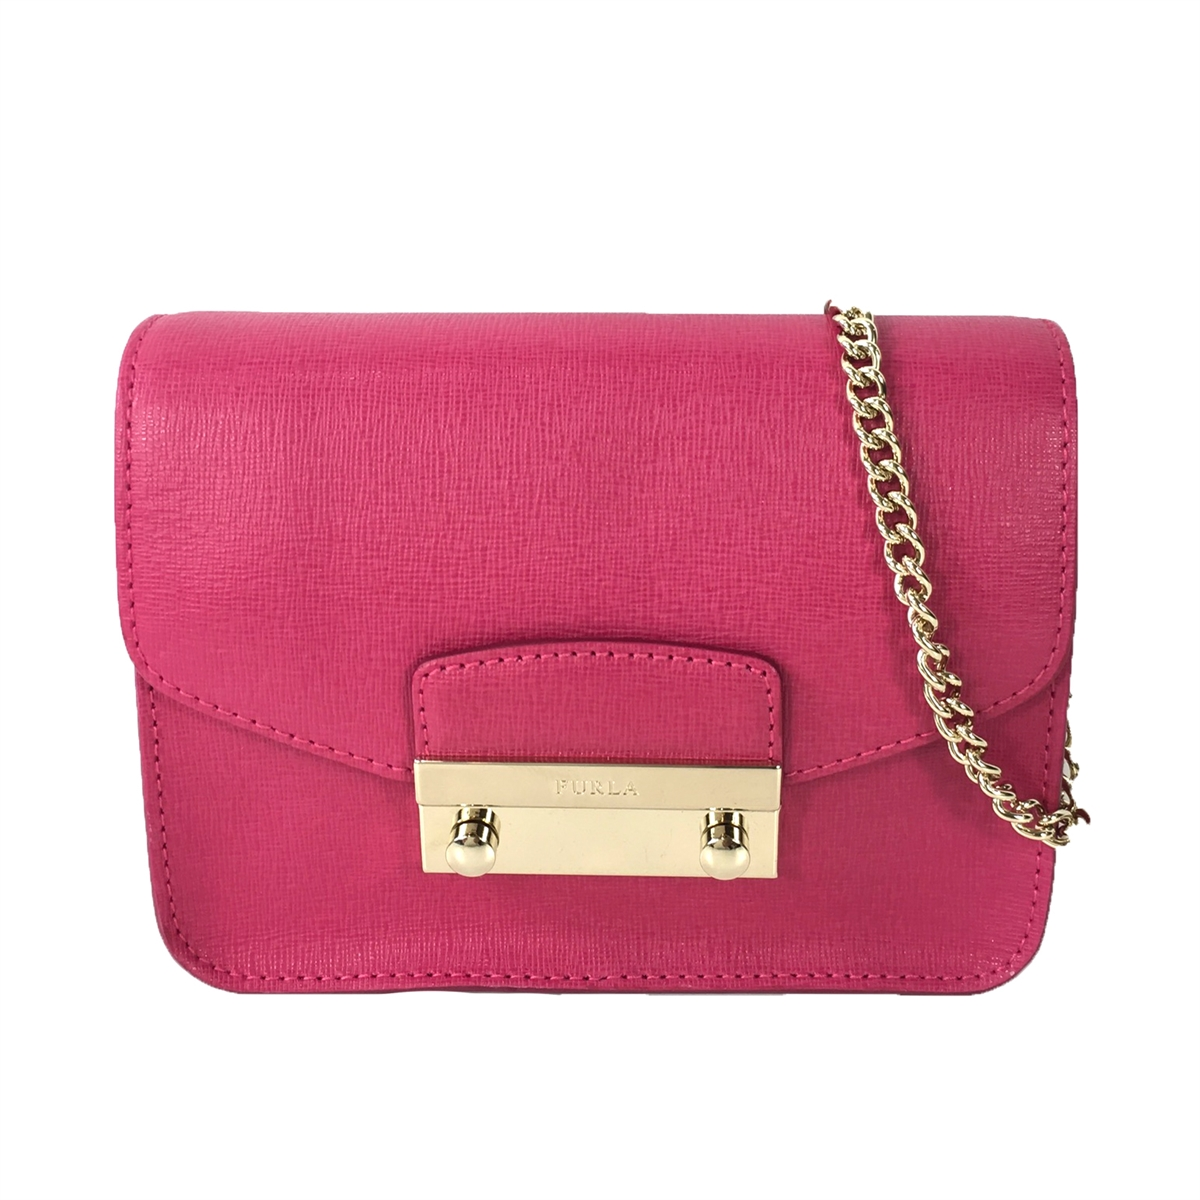 139e44f4e0cdd1 Furla Julia Saffiano Leather Mini Crossbody Bag, Gloss Pink